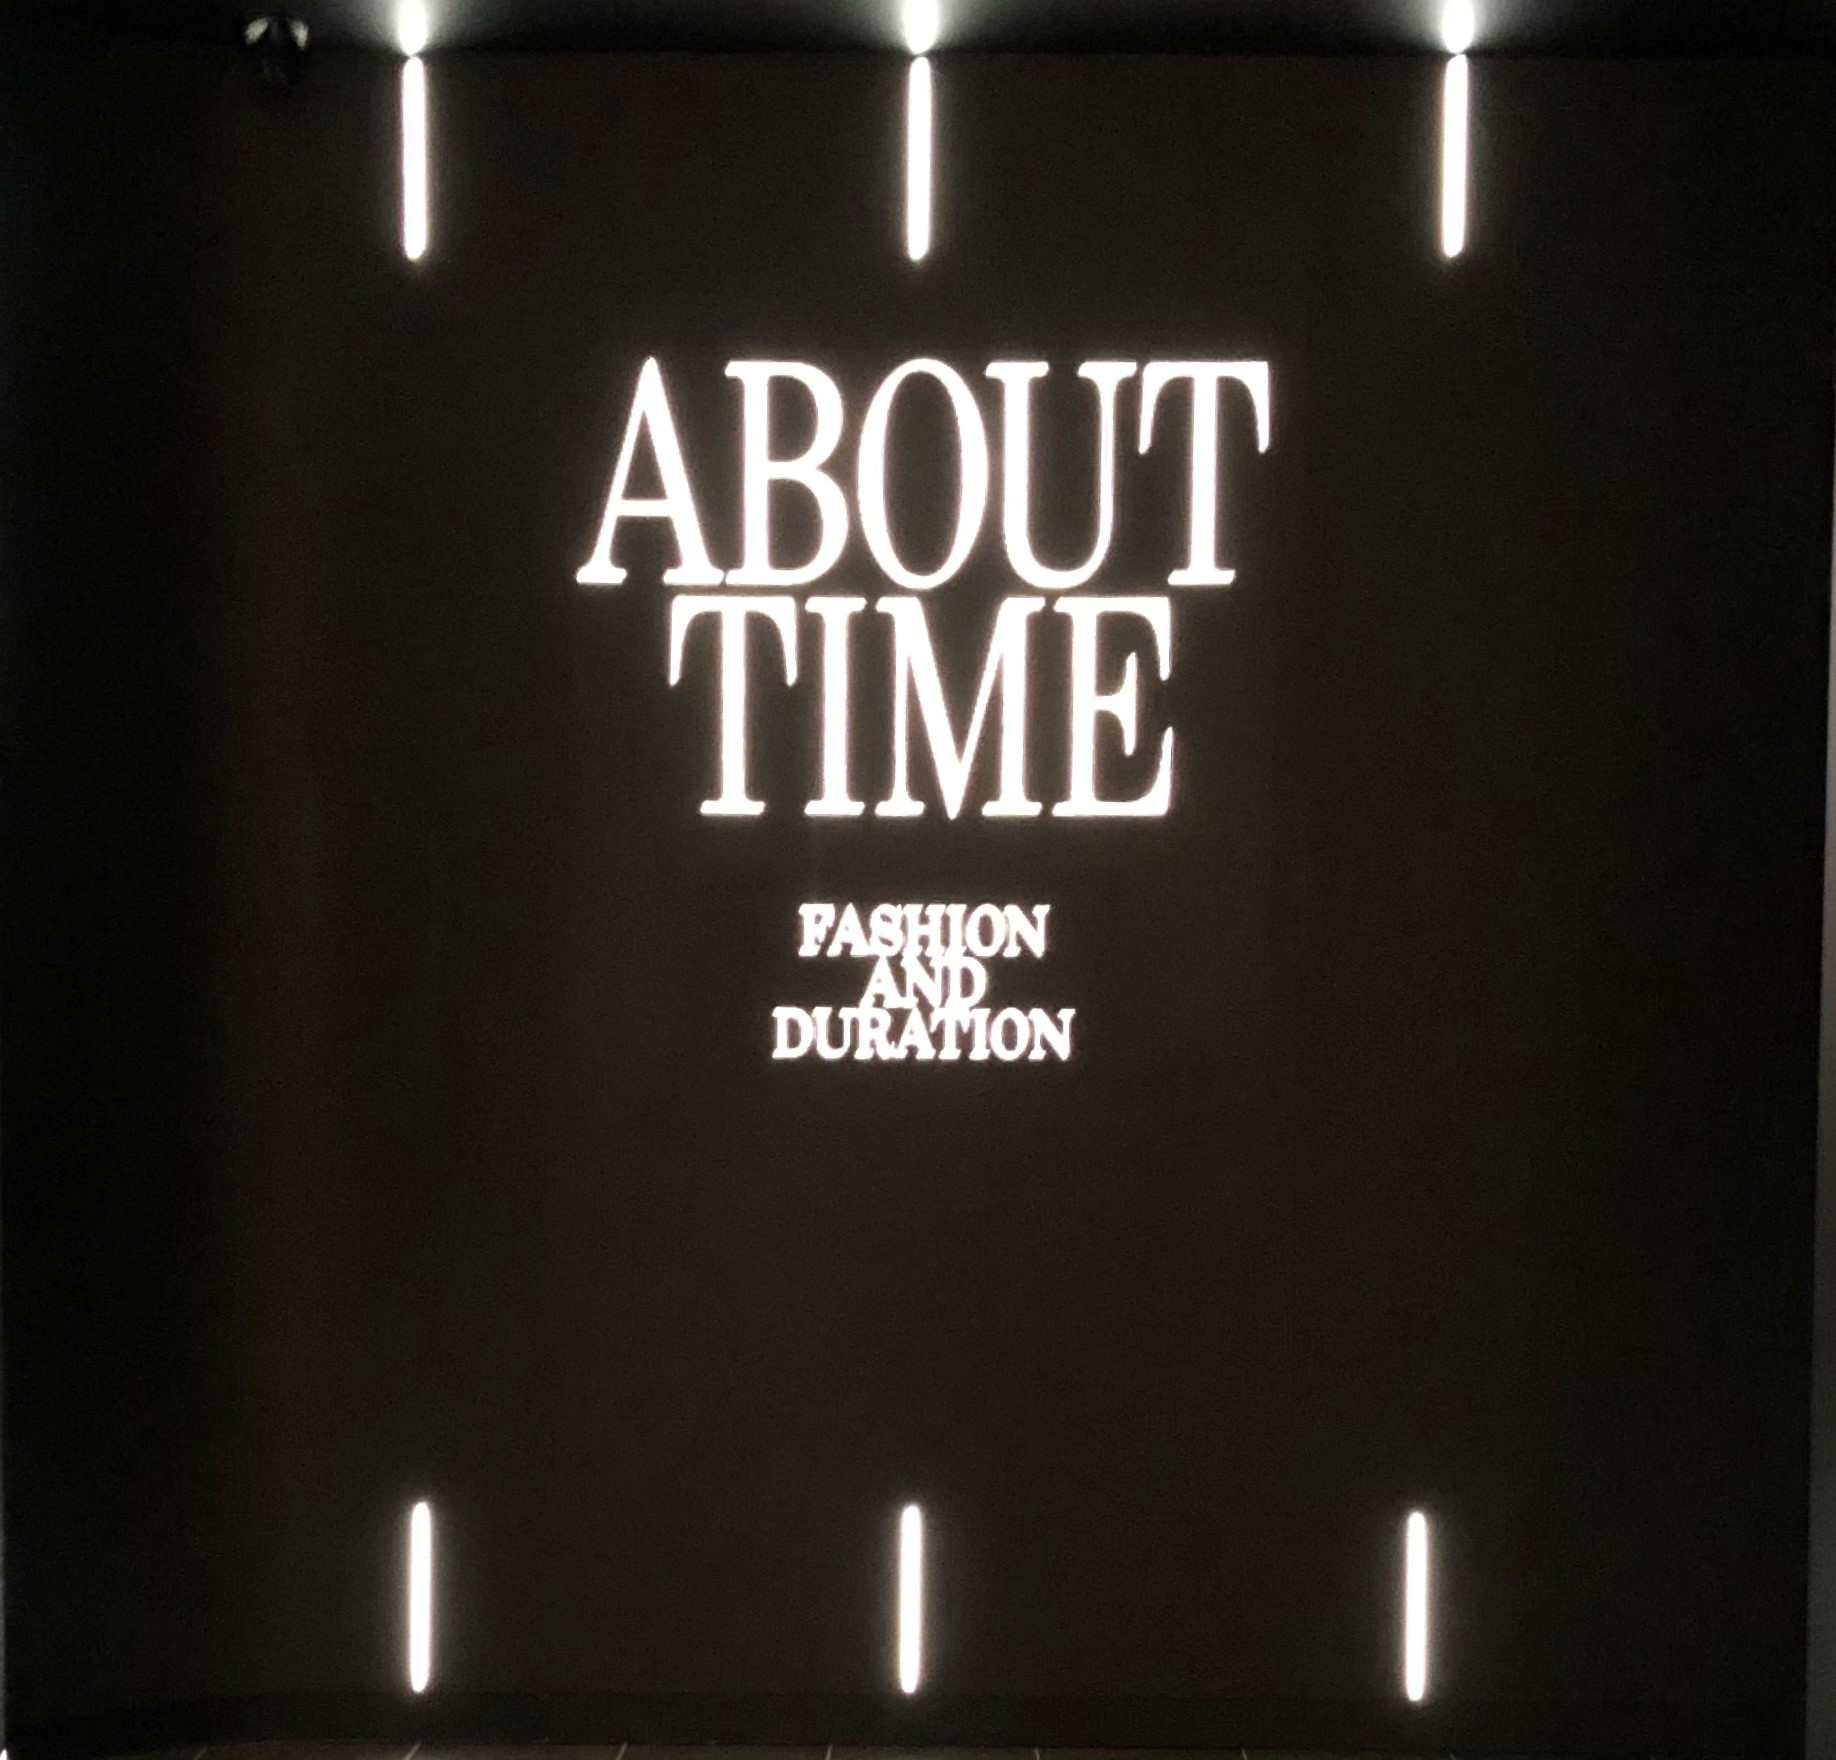 About Time Fashion and Duration